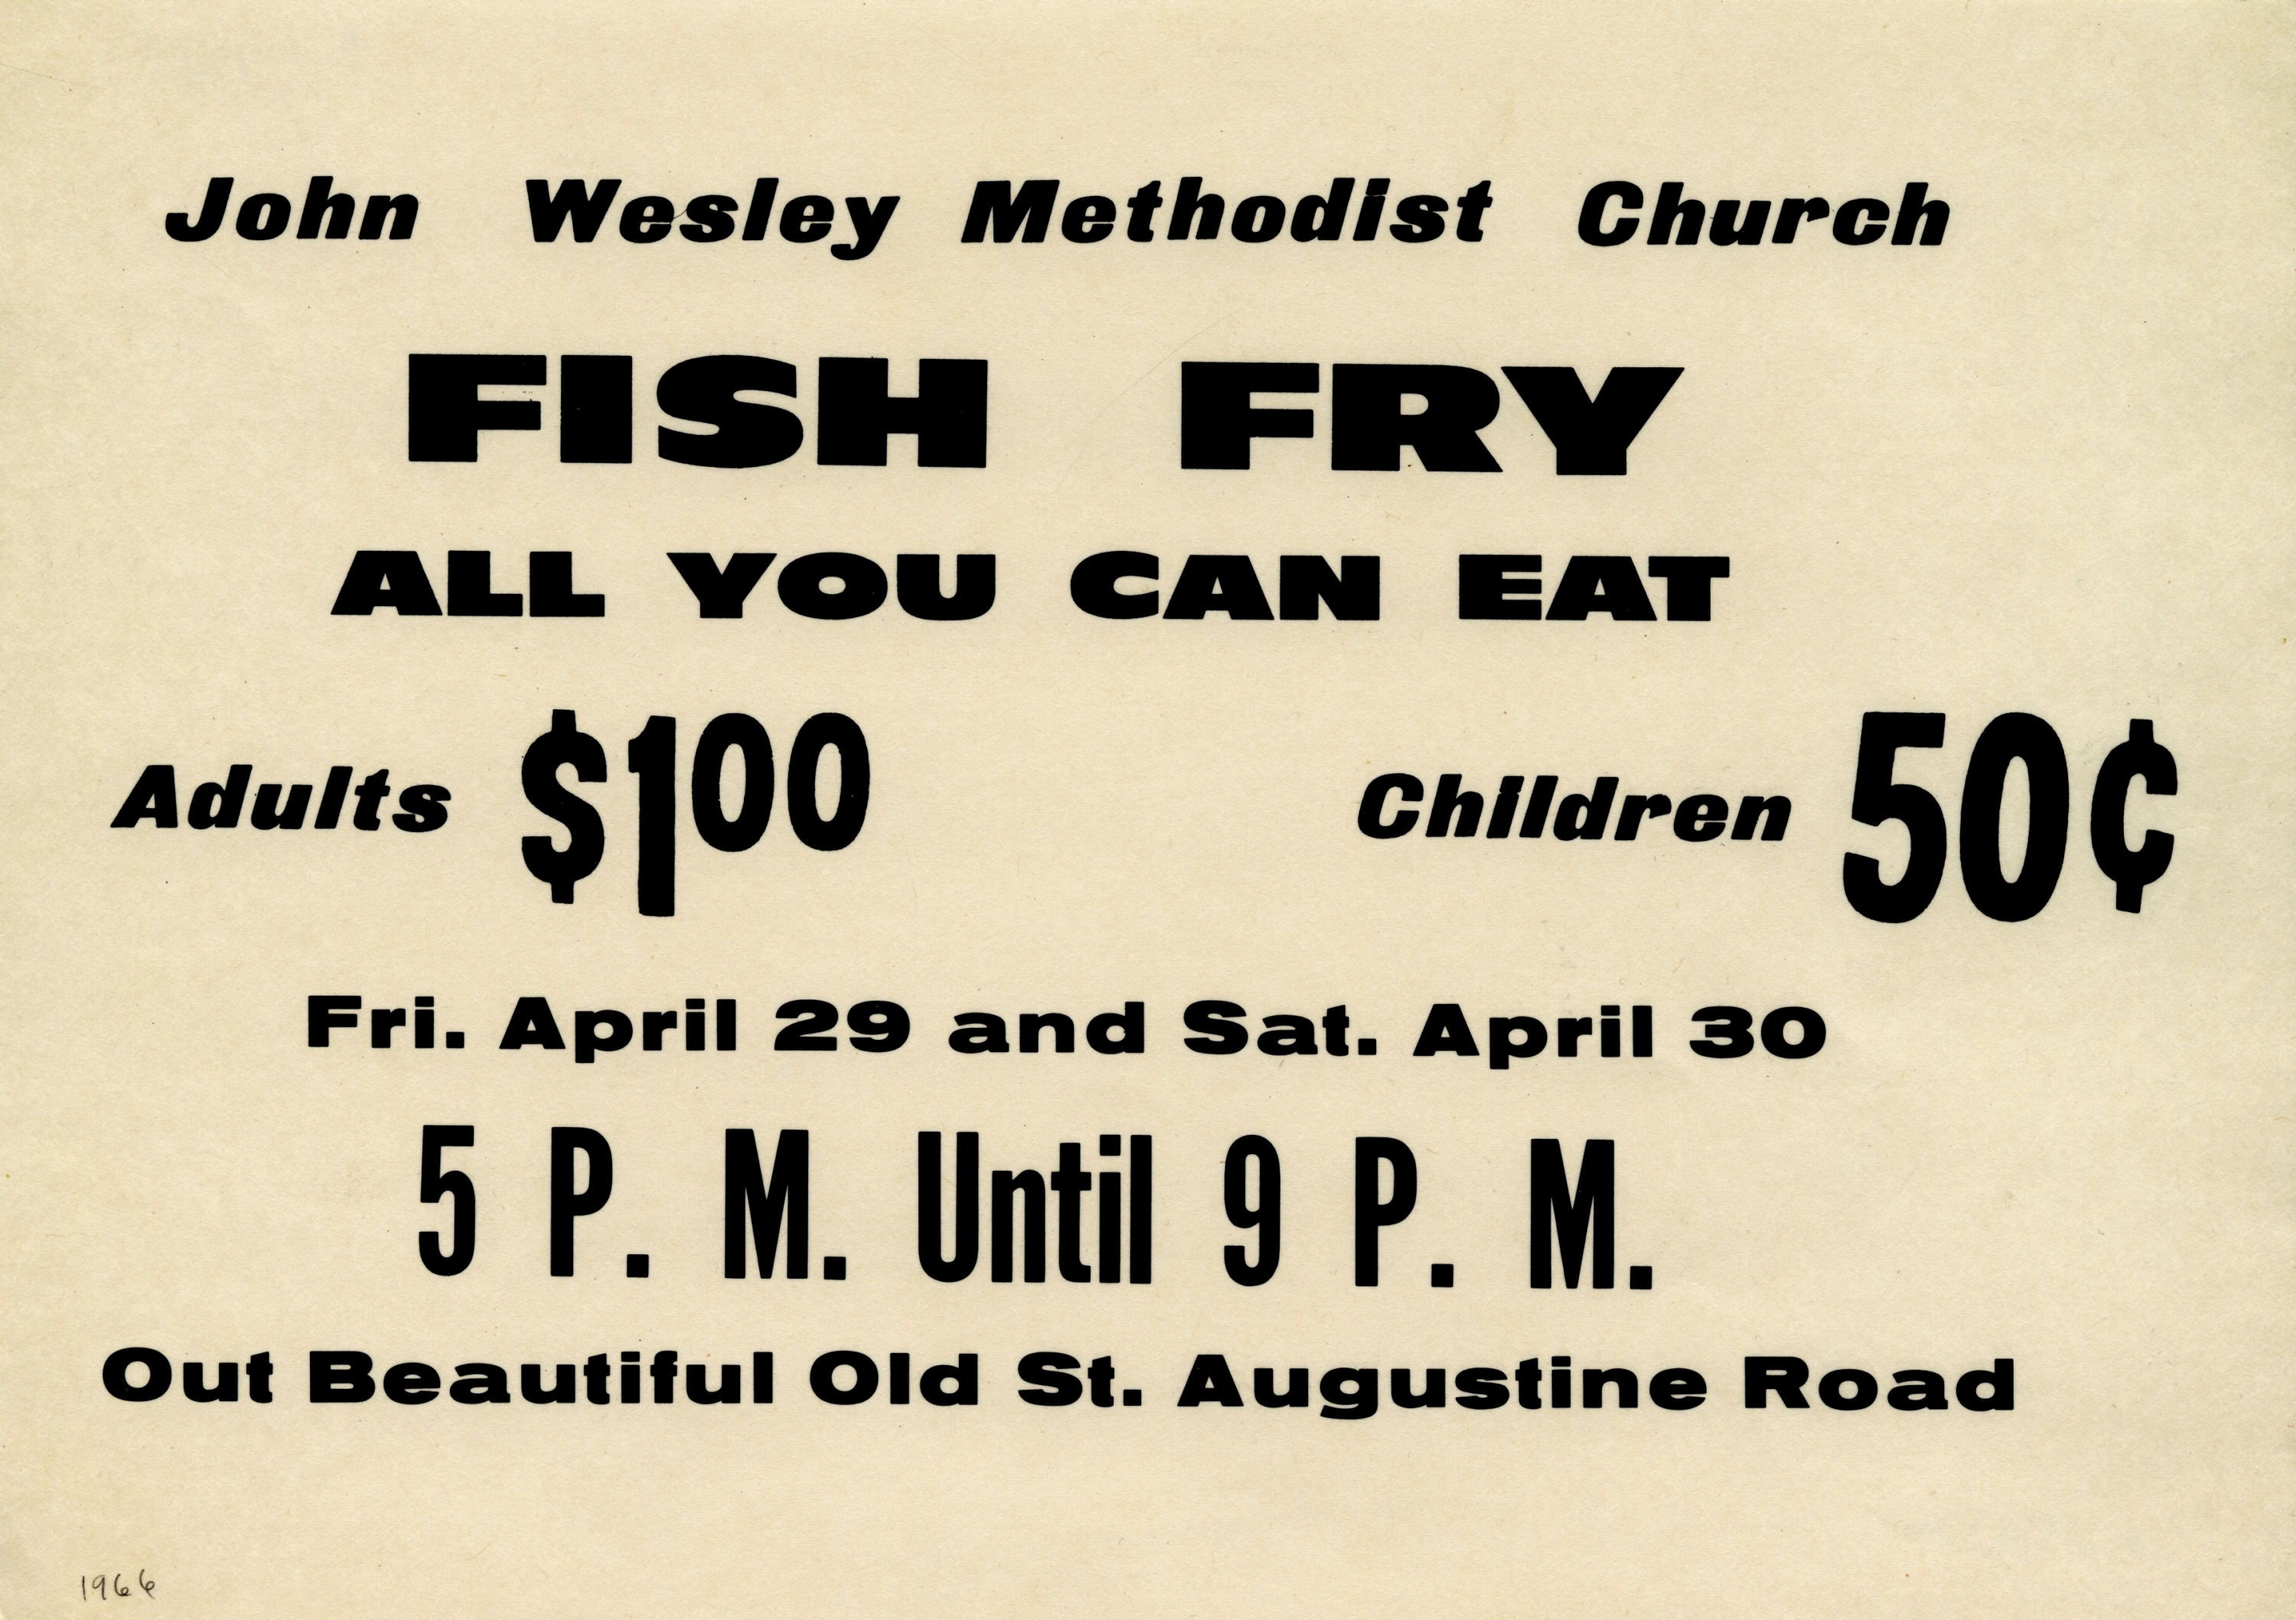 John Wesley Methodist Church fish fry.